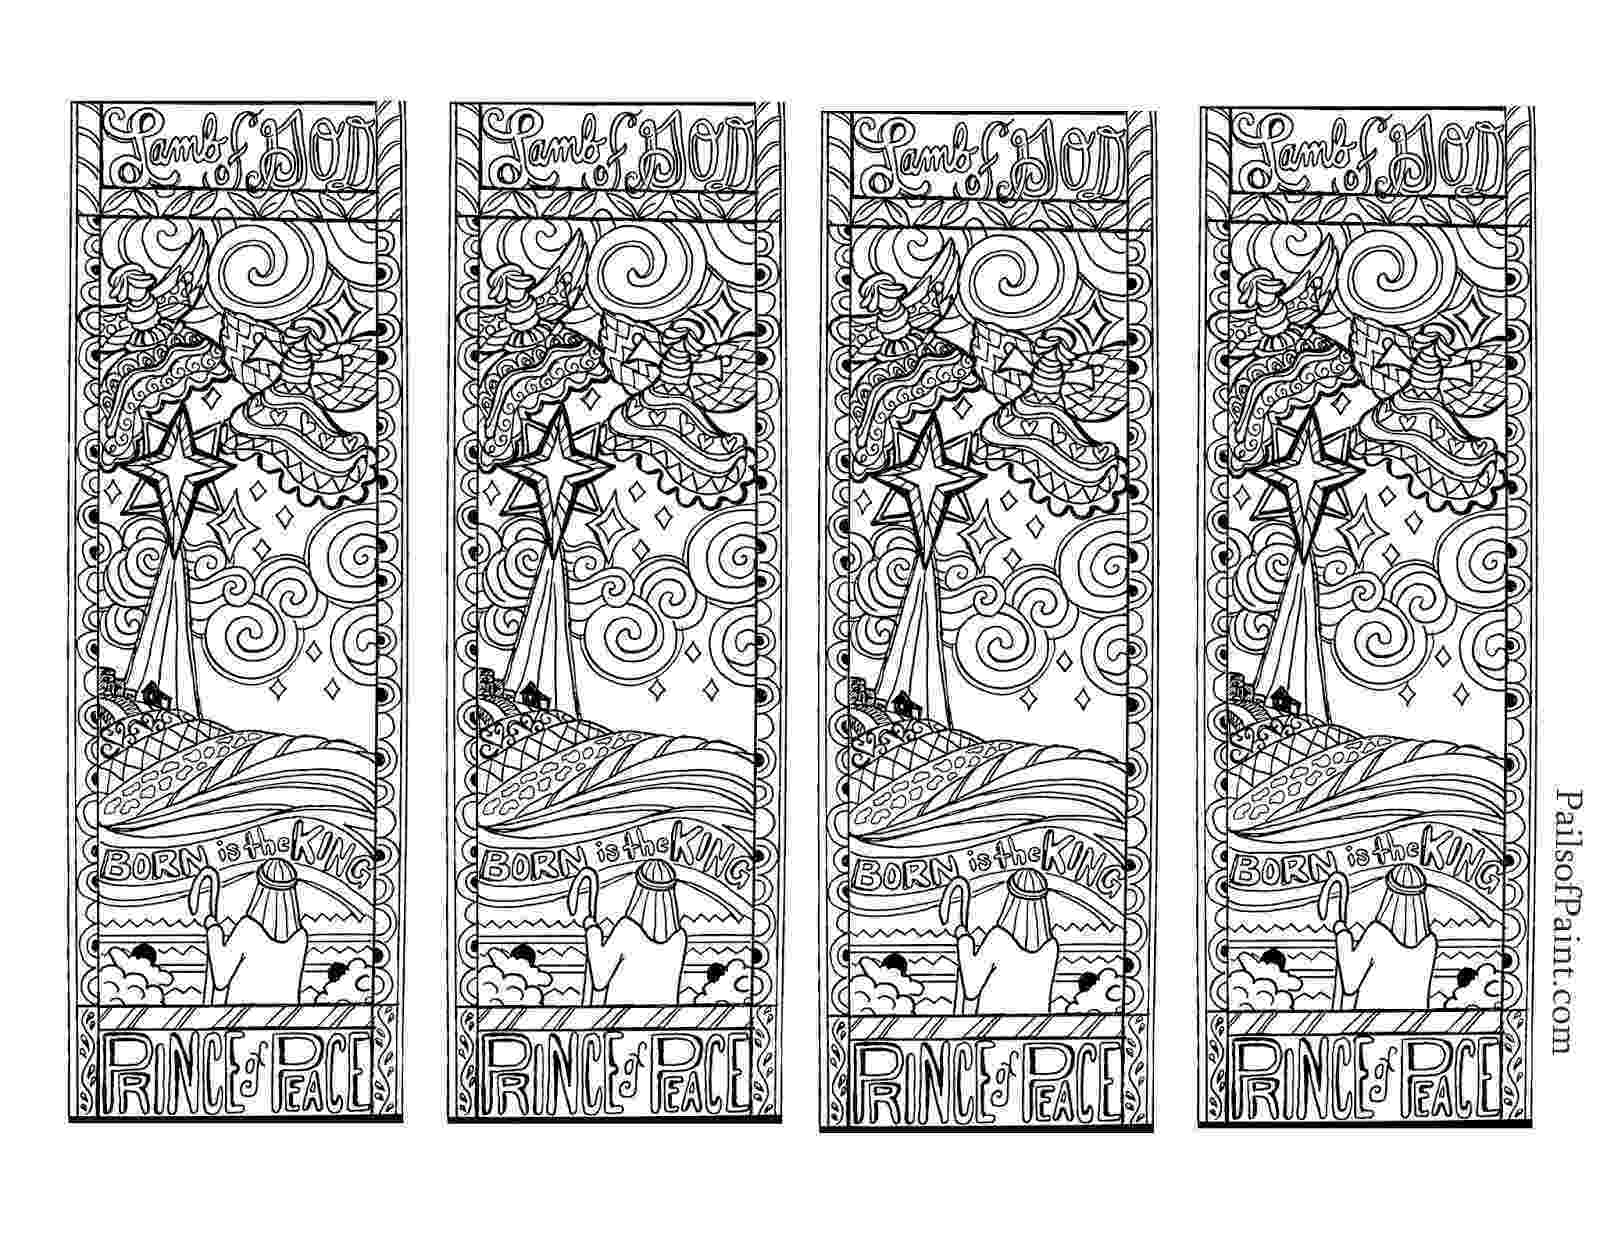 printable colouring bookmarks printable bookmarks with bible verses for kids world of colouring bookmarks printable